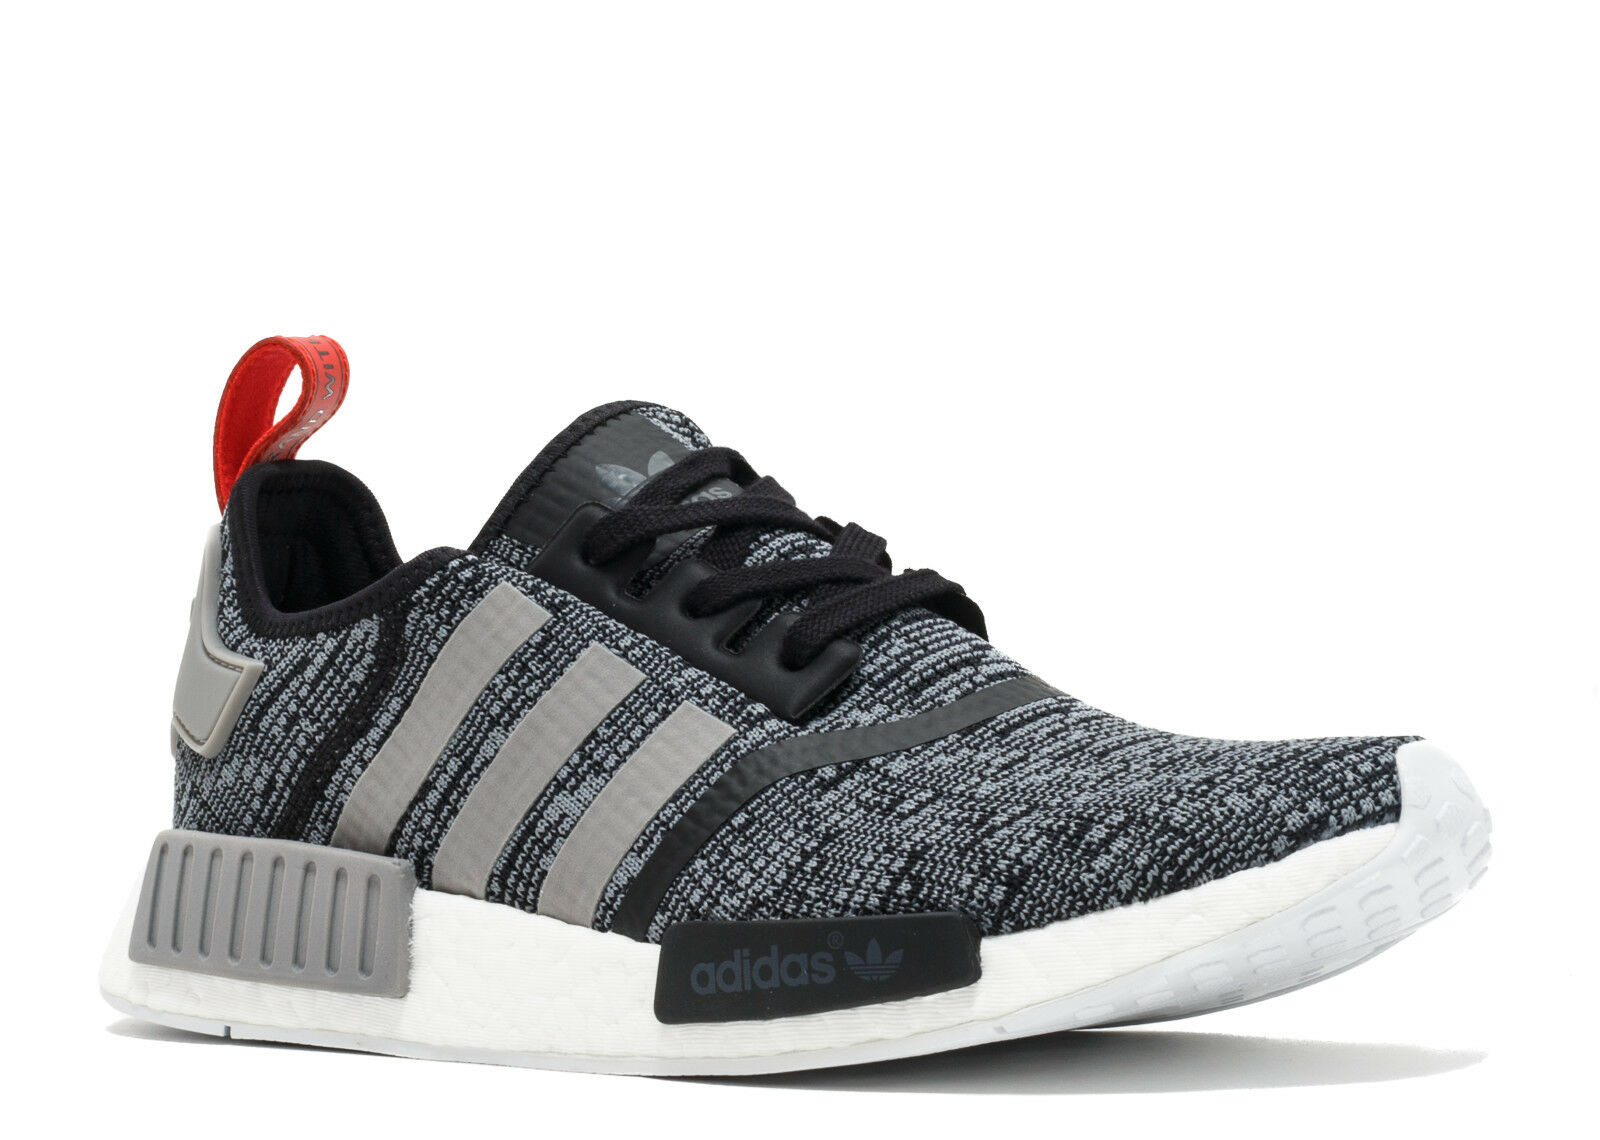 Adidas NMD R1 Core Black Grey Red Glitch Camo Pack Nomad Runner BB2884 Size 9